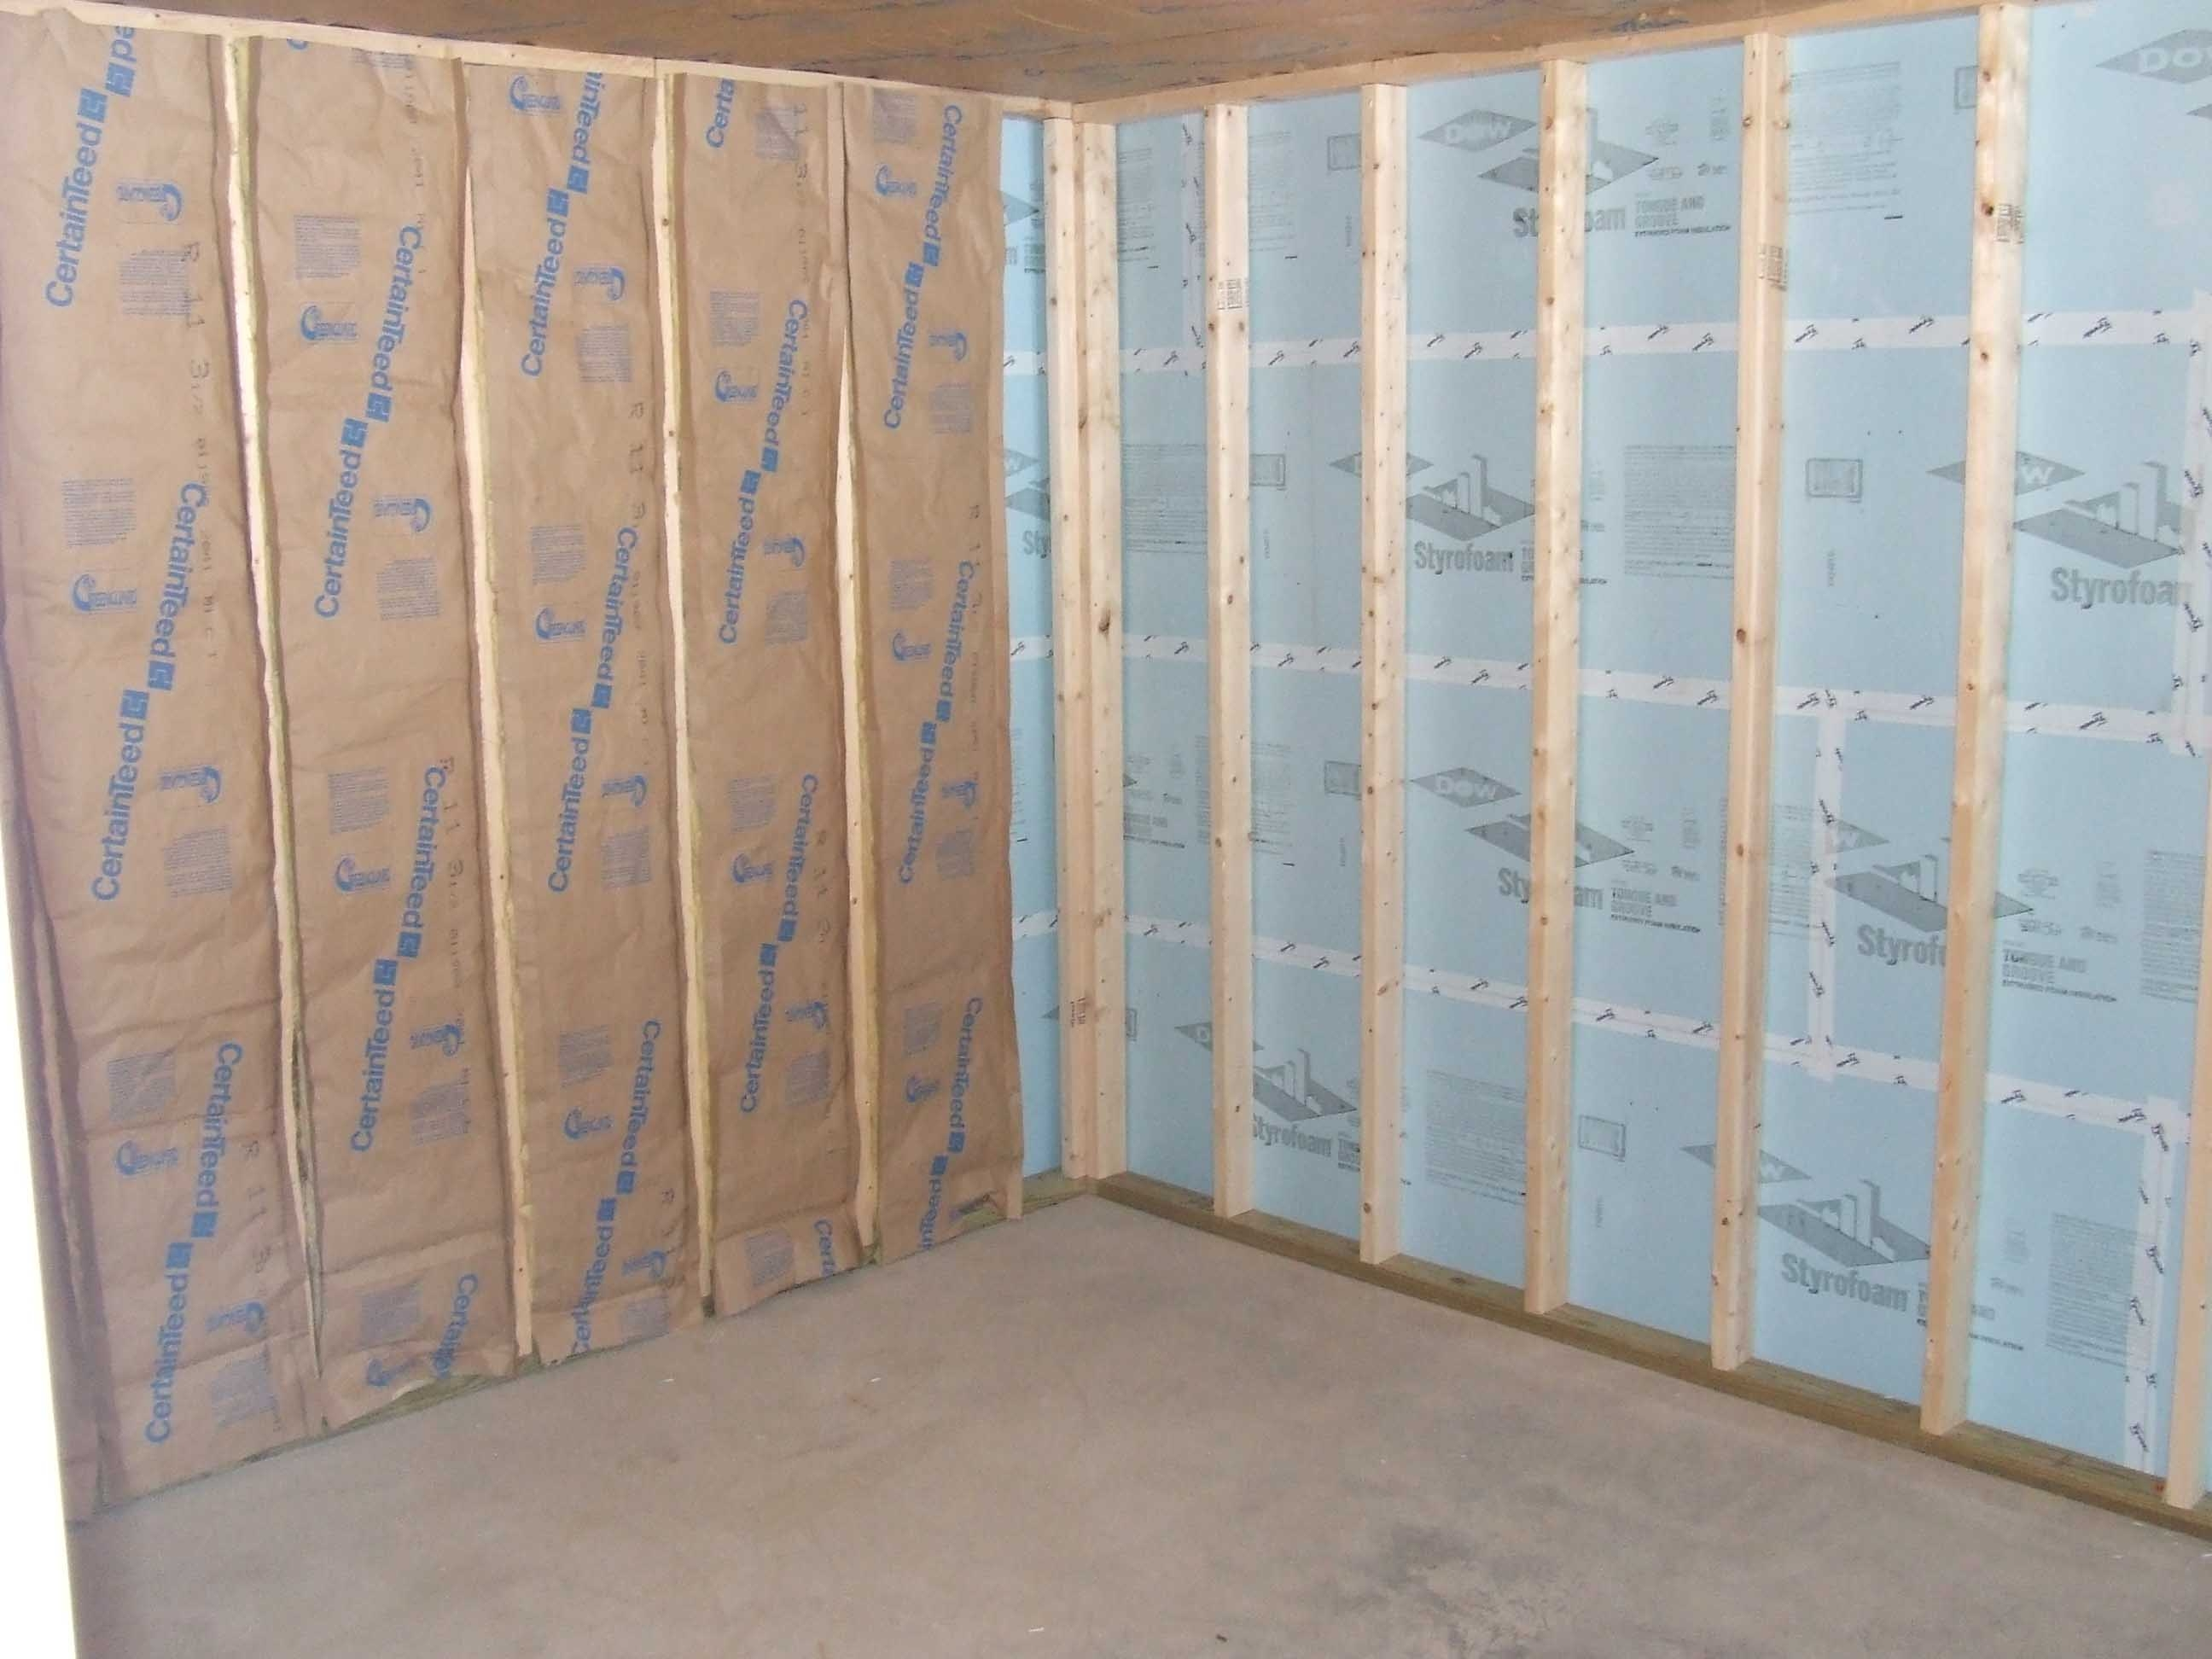 Insulate Basement Garage Door Insulate Basement Garage Door best methods for insulating basement walls 2592 X 1944